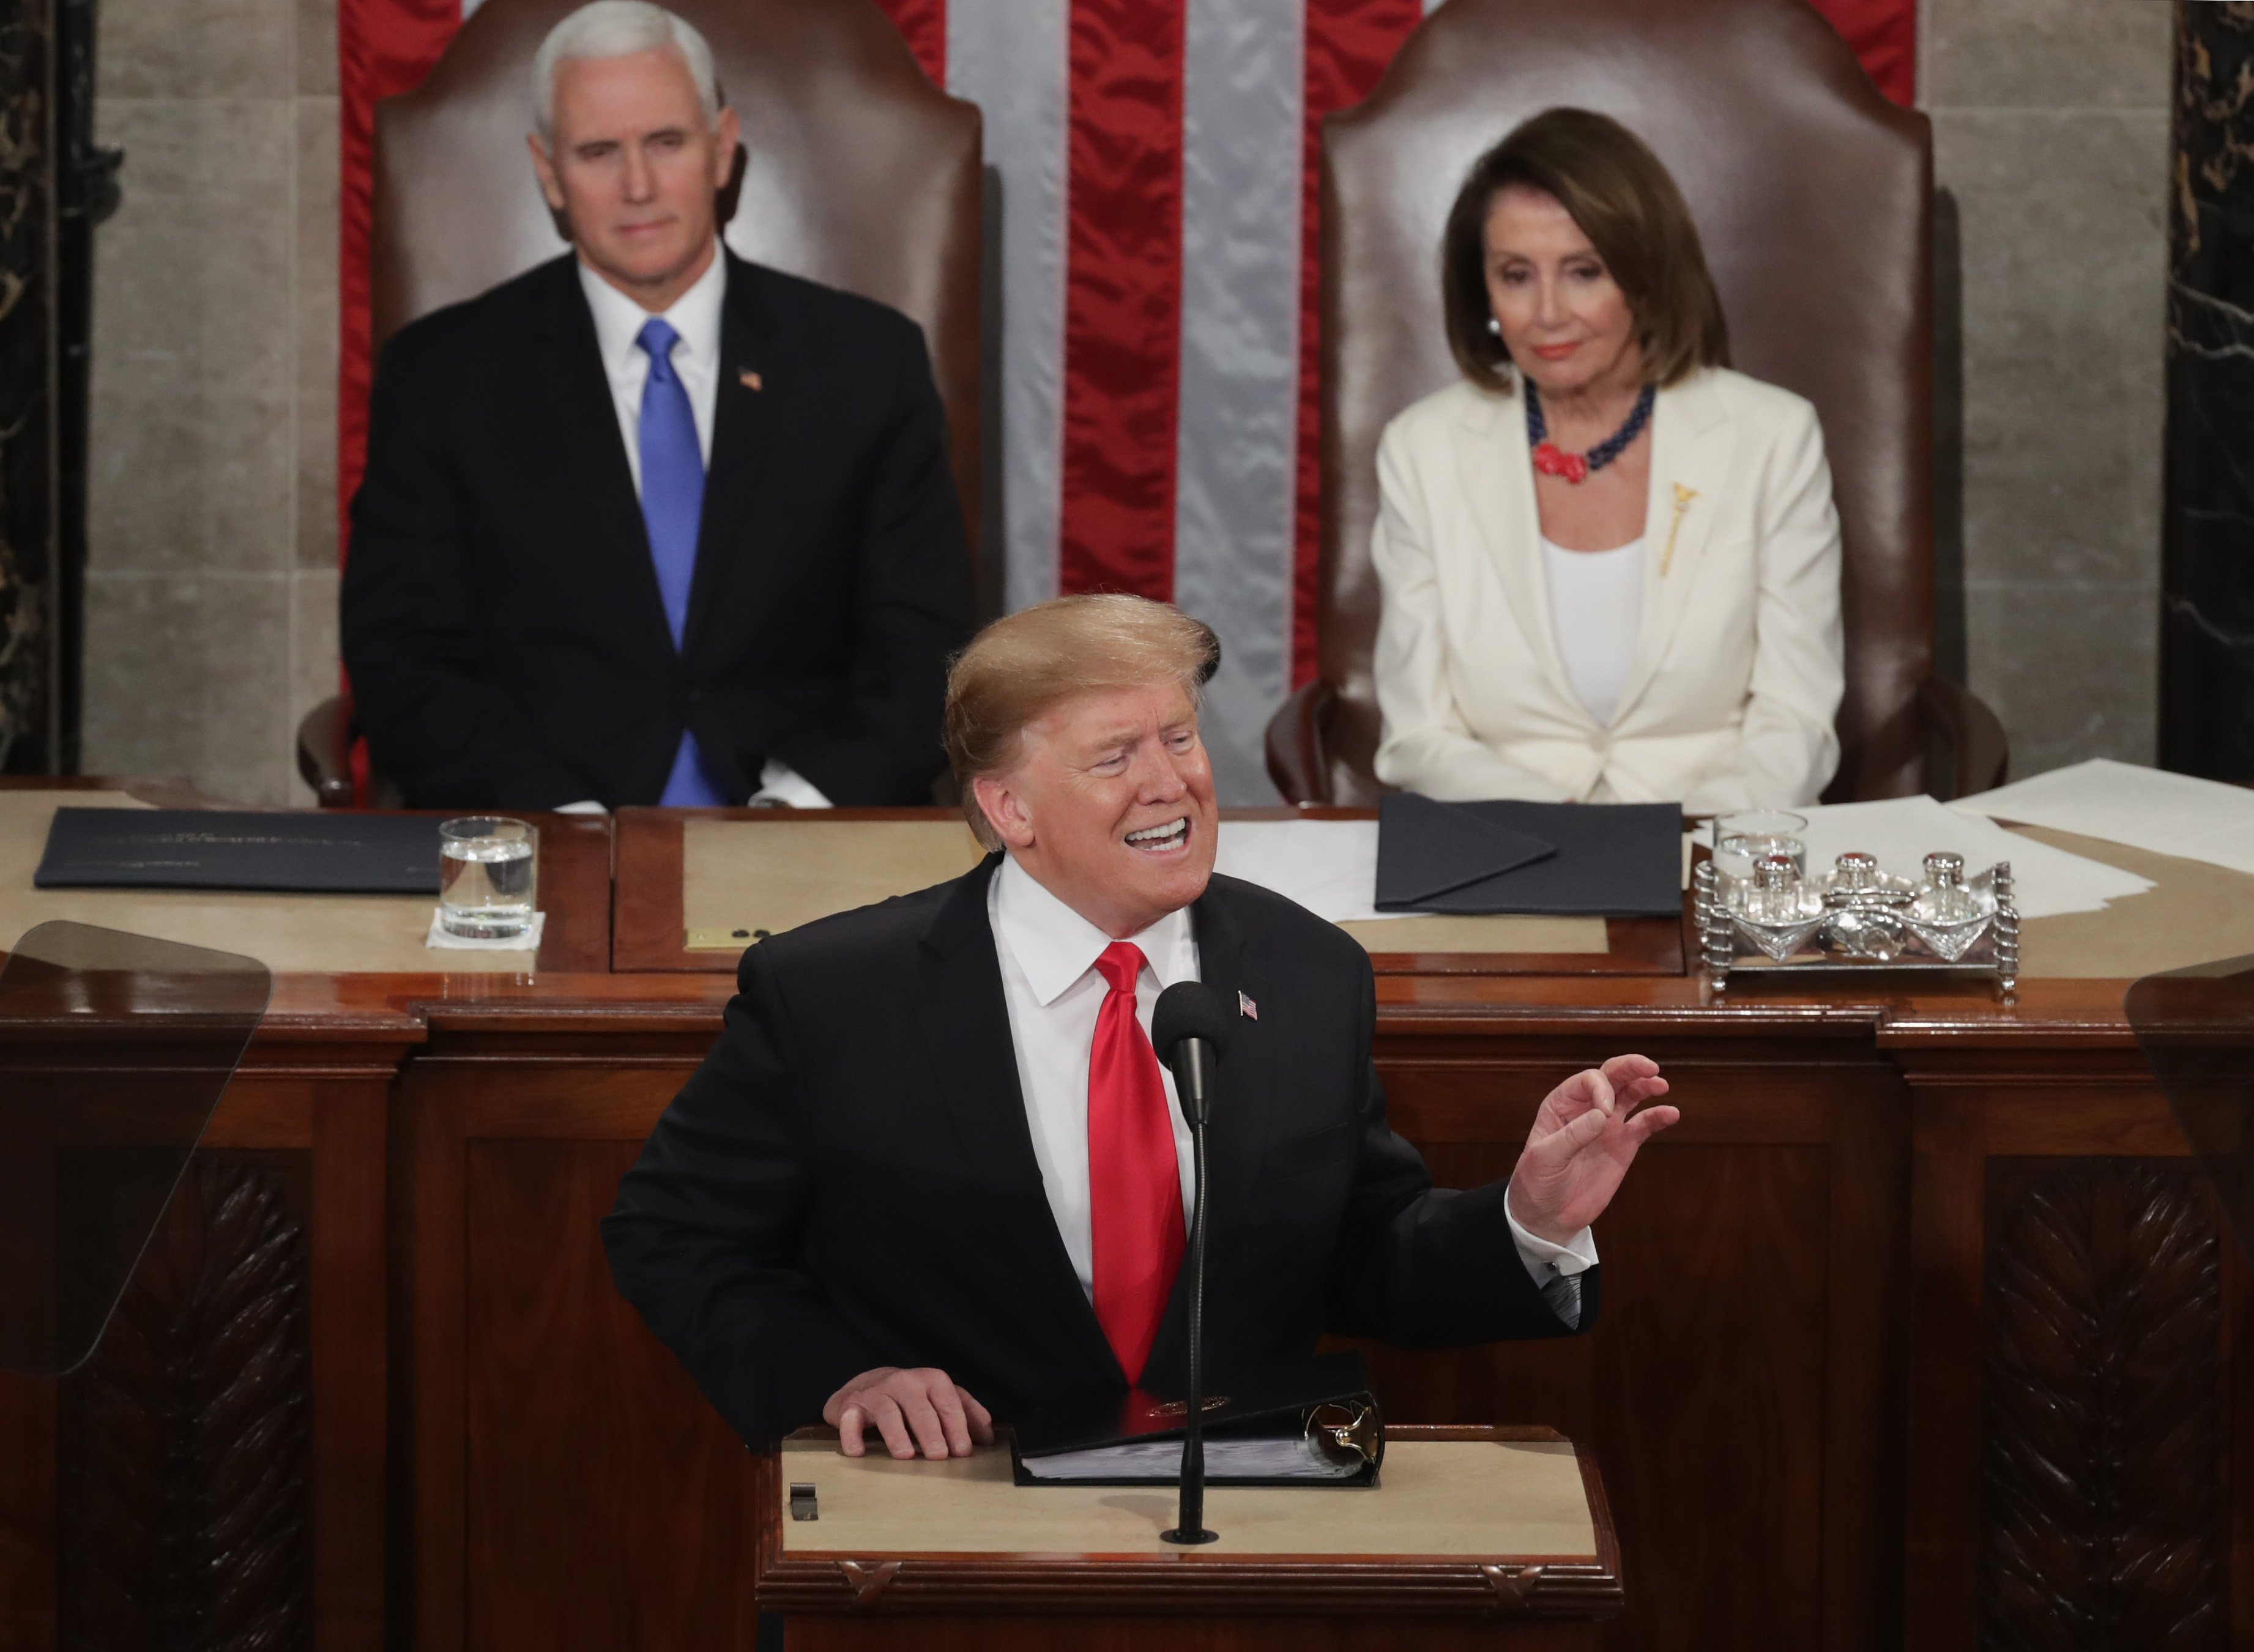 Donald Trump con Mike Pence y Nancy Pelosi | Imagen tomada de: Getty